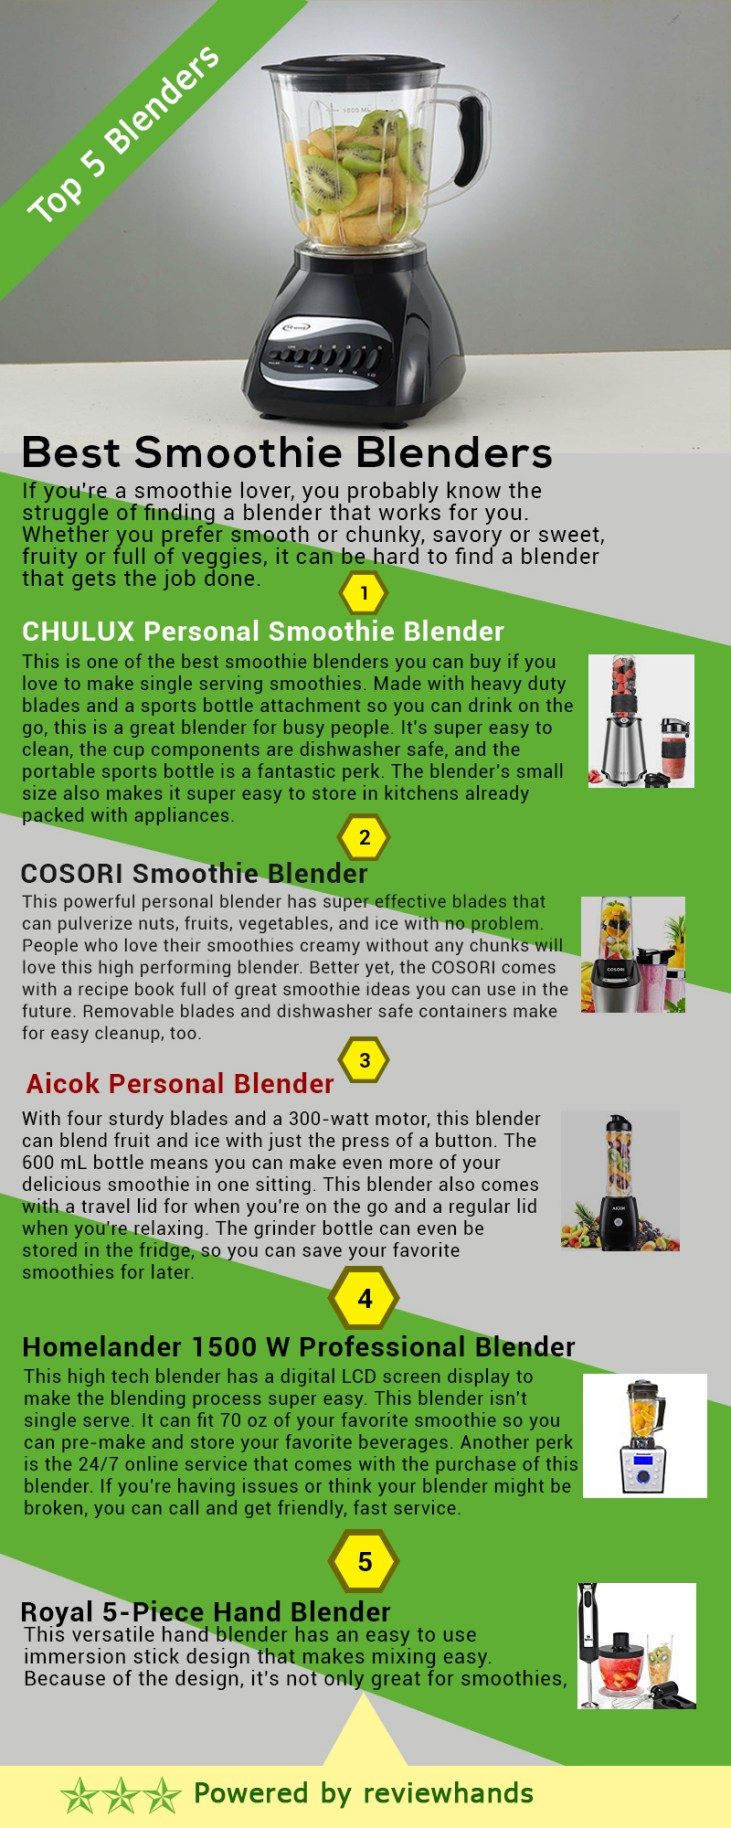 Best Smoothie Blenders Infographic